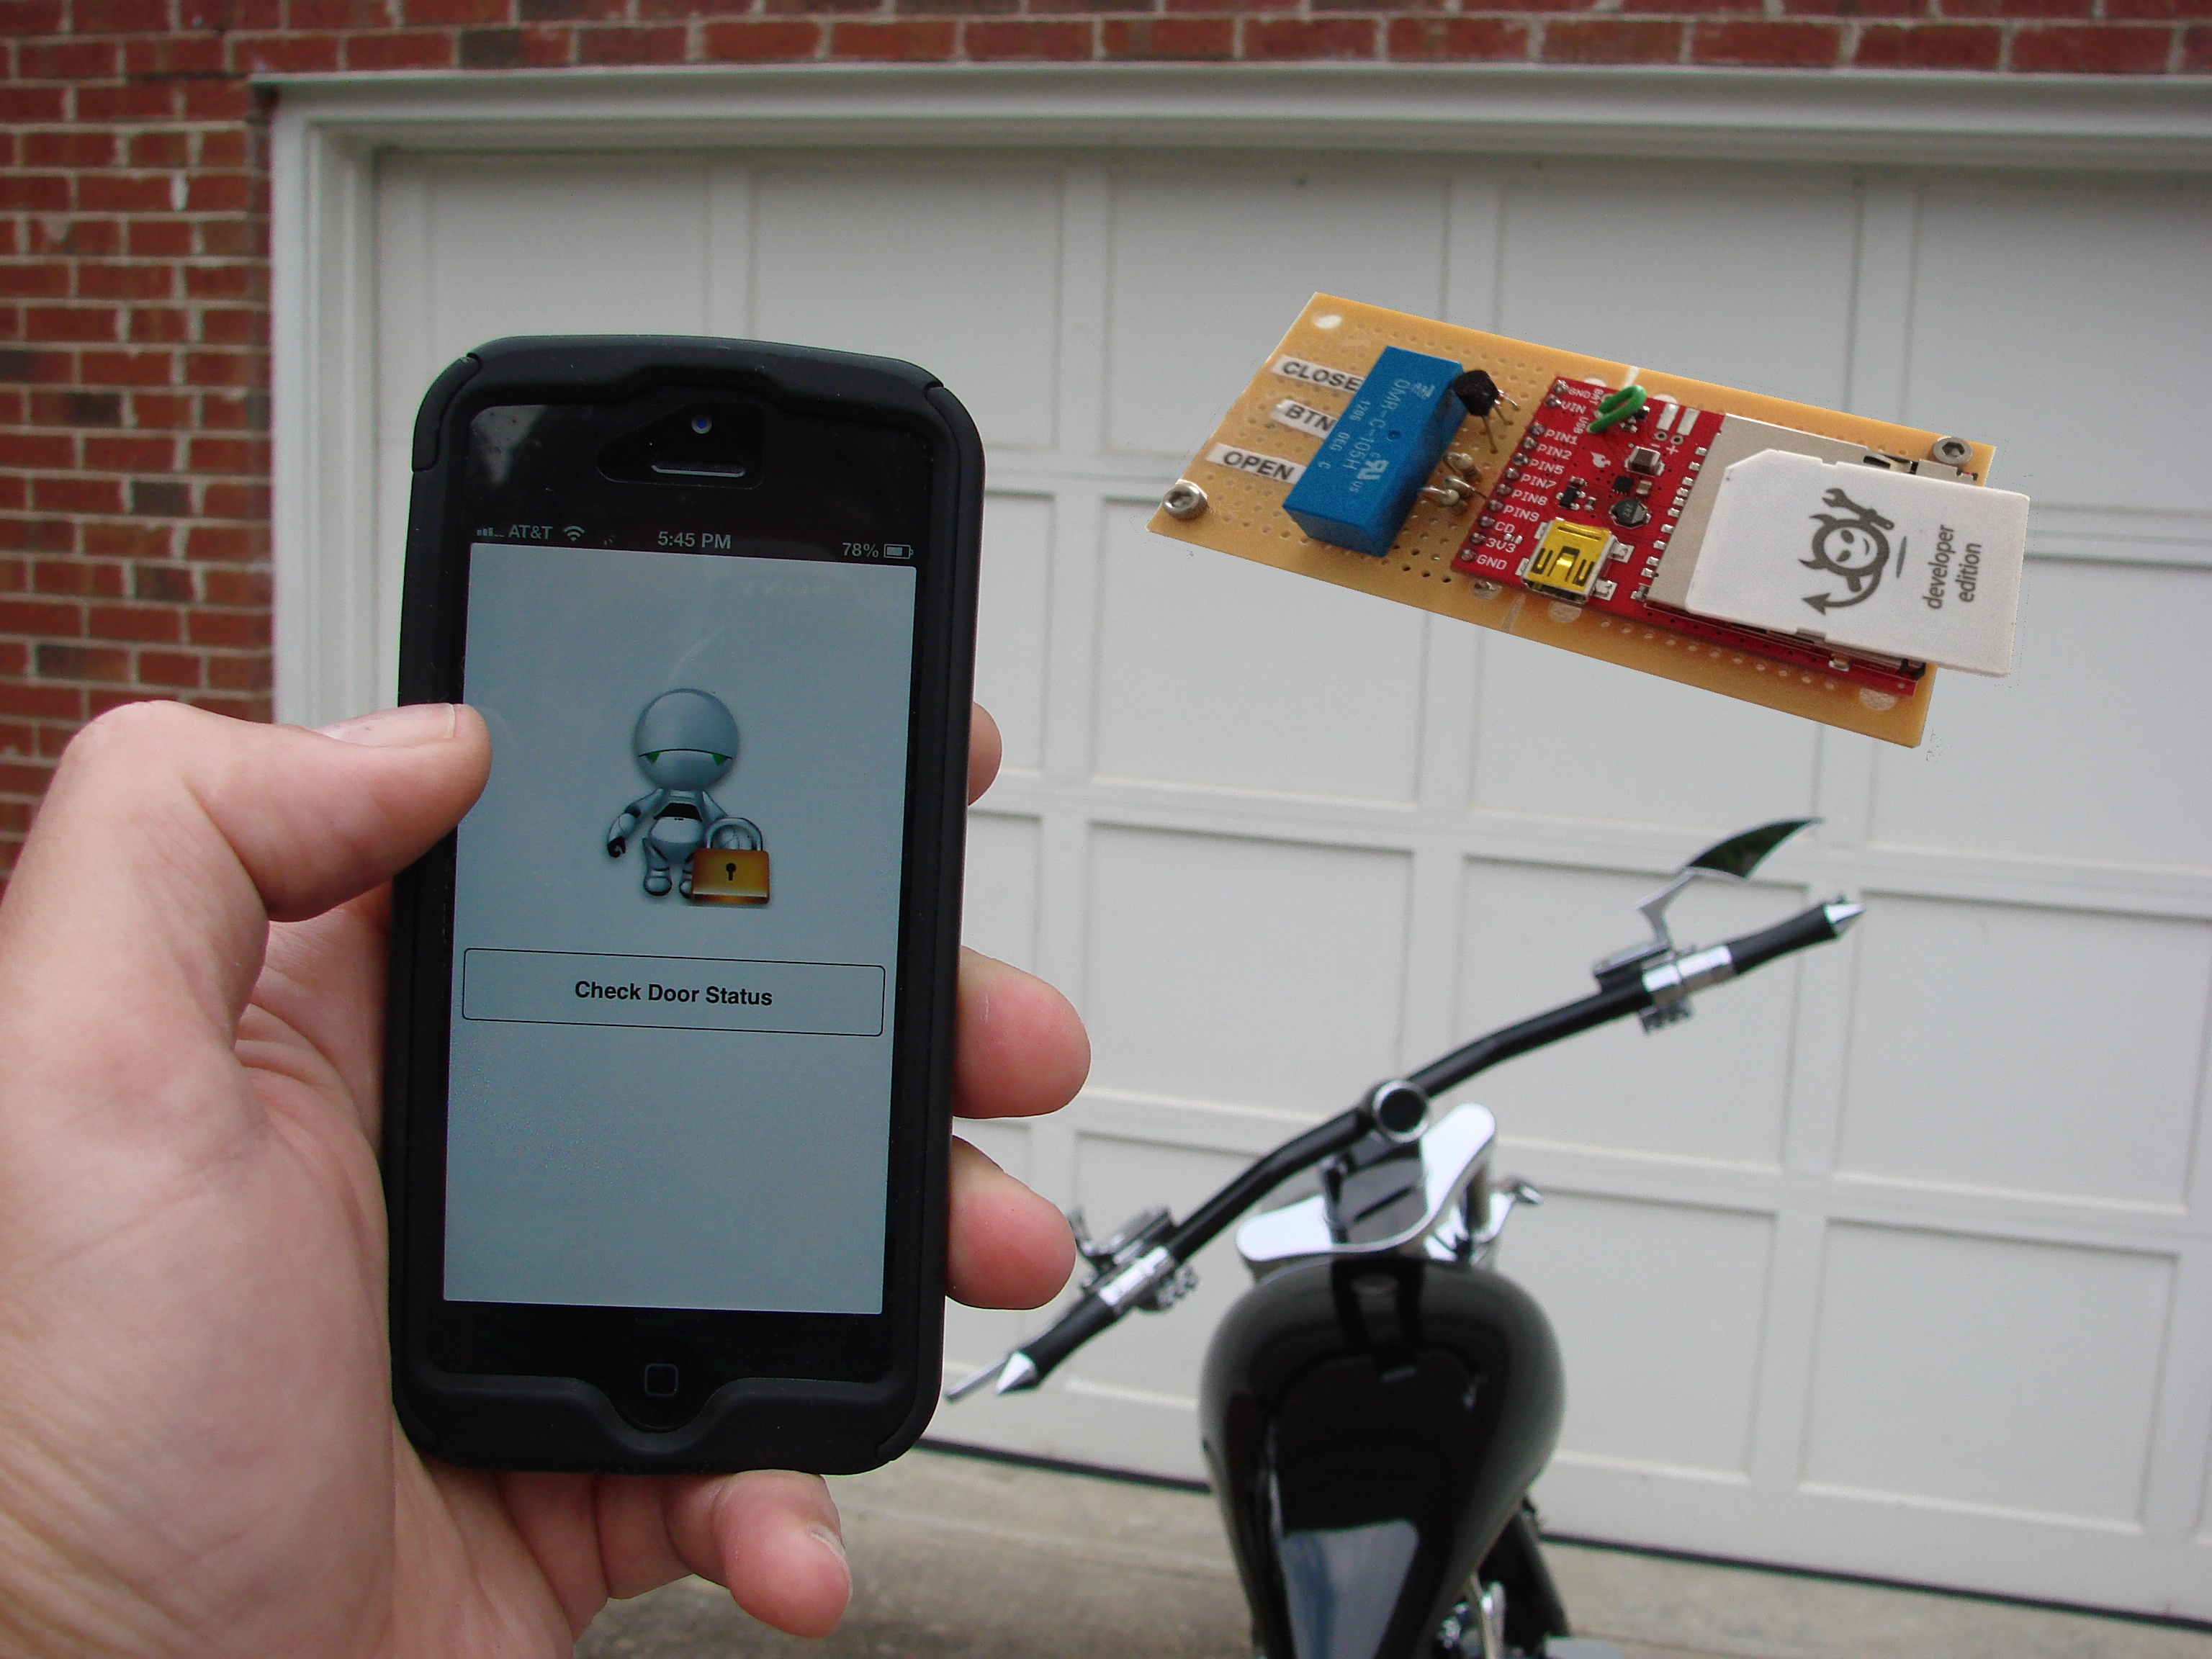 Electric Imp Garage Door Opener: 11 Steps (with Pictures)